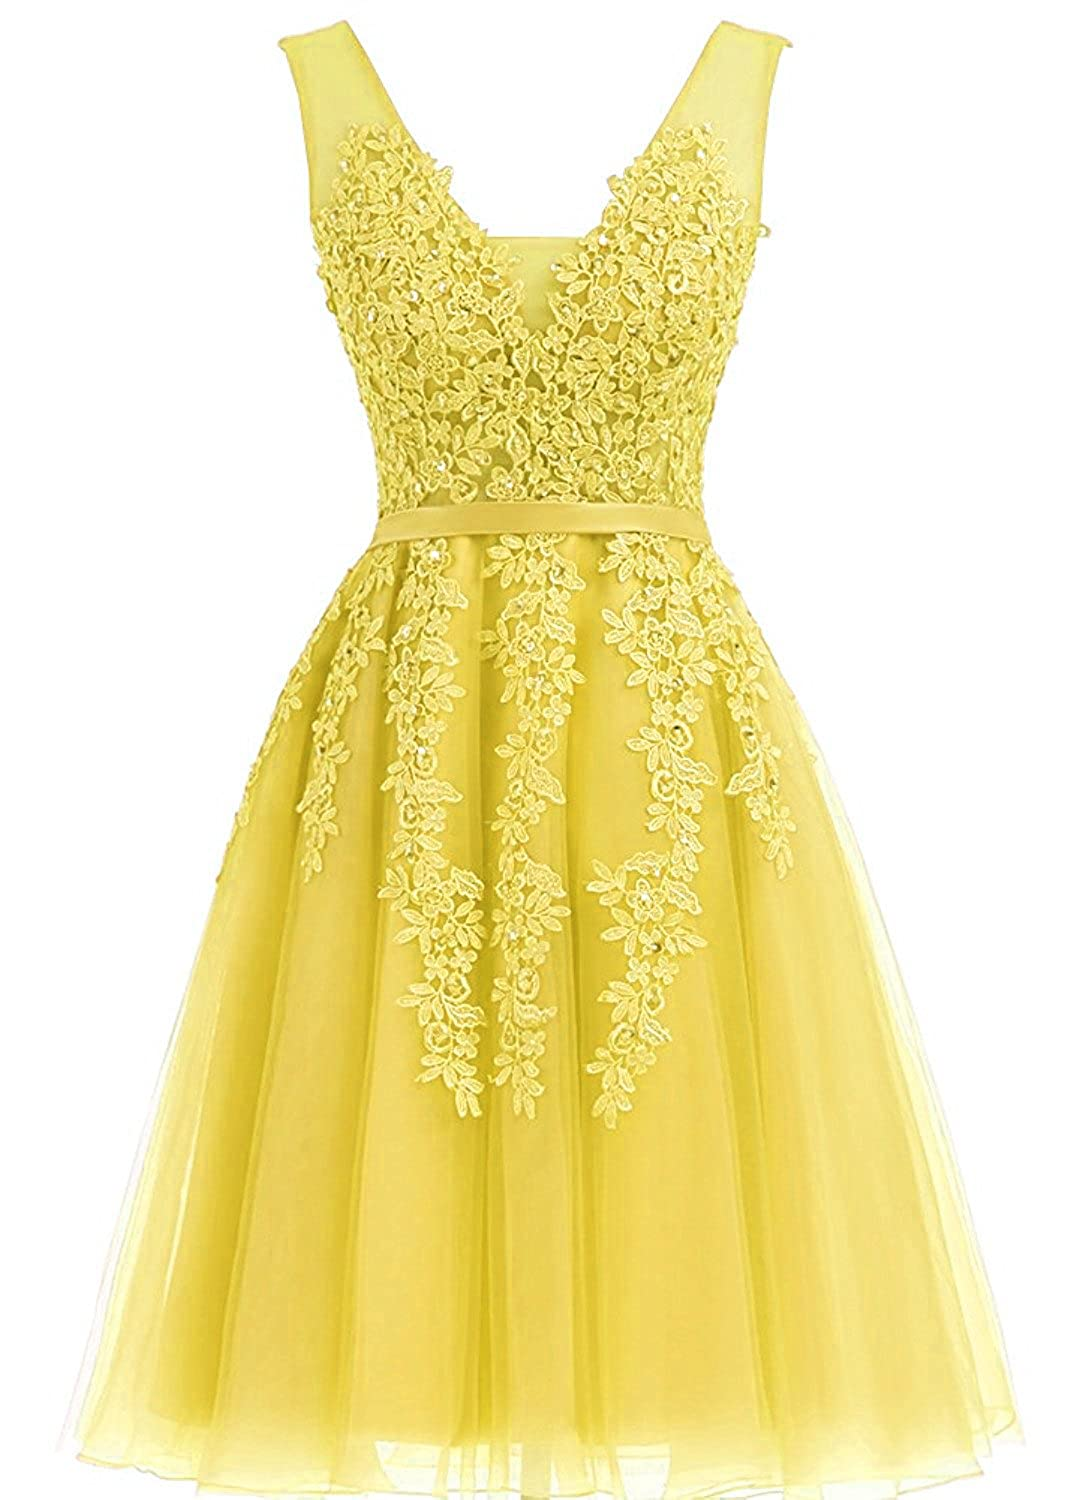 Yellow Caissen Women's Short Ball Gown Sheer VNeck Beading Appliques Tulle Prom Dress VBack with Zipper Mini Party Dress